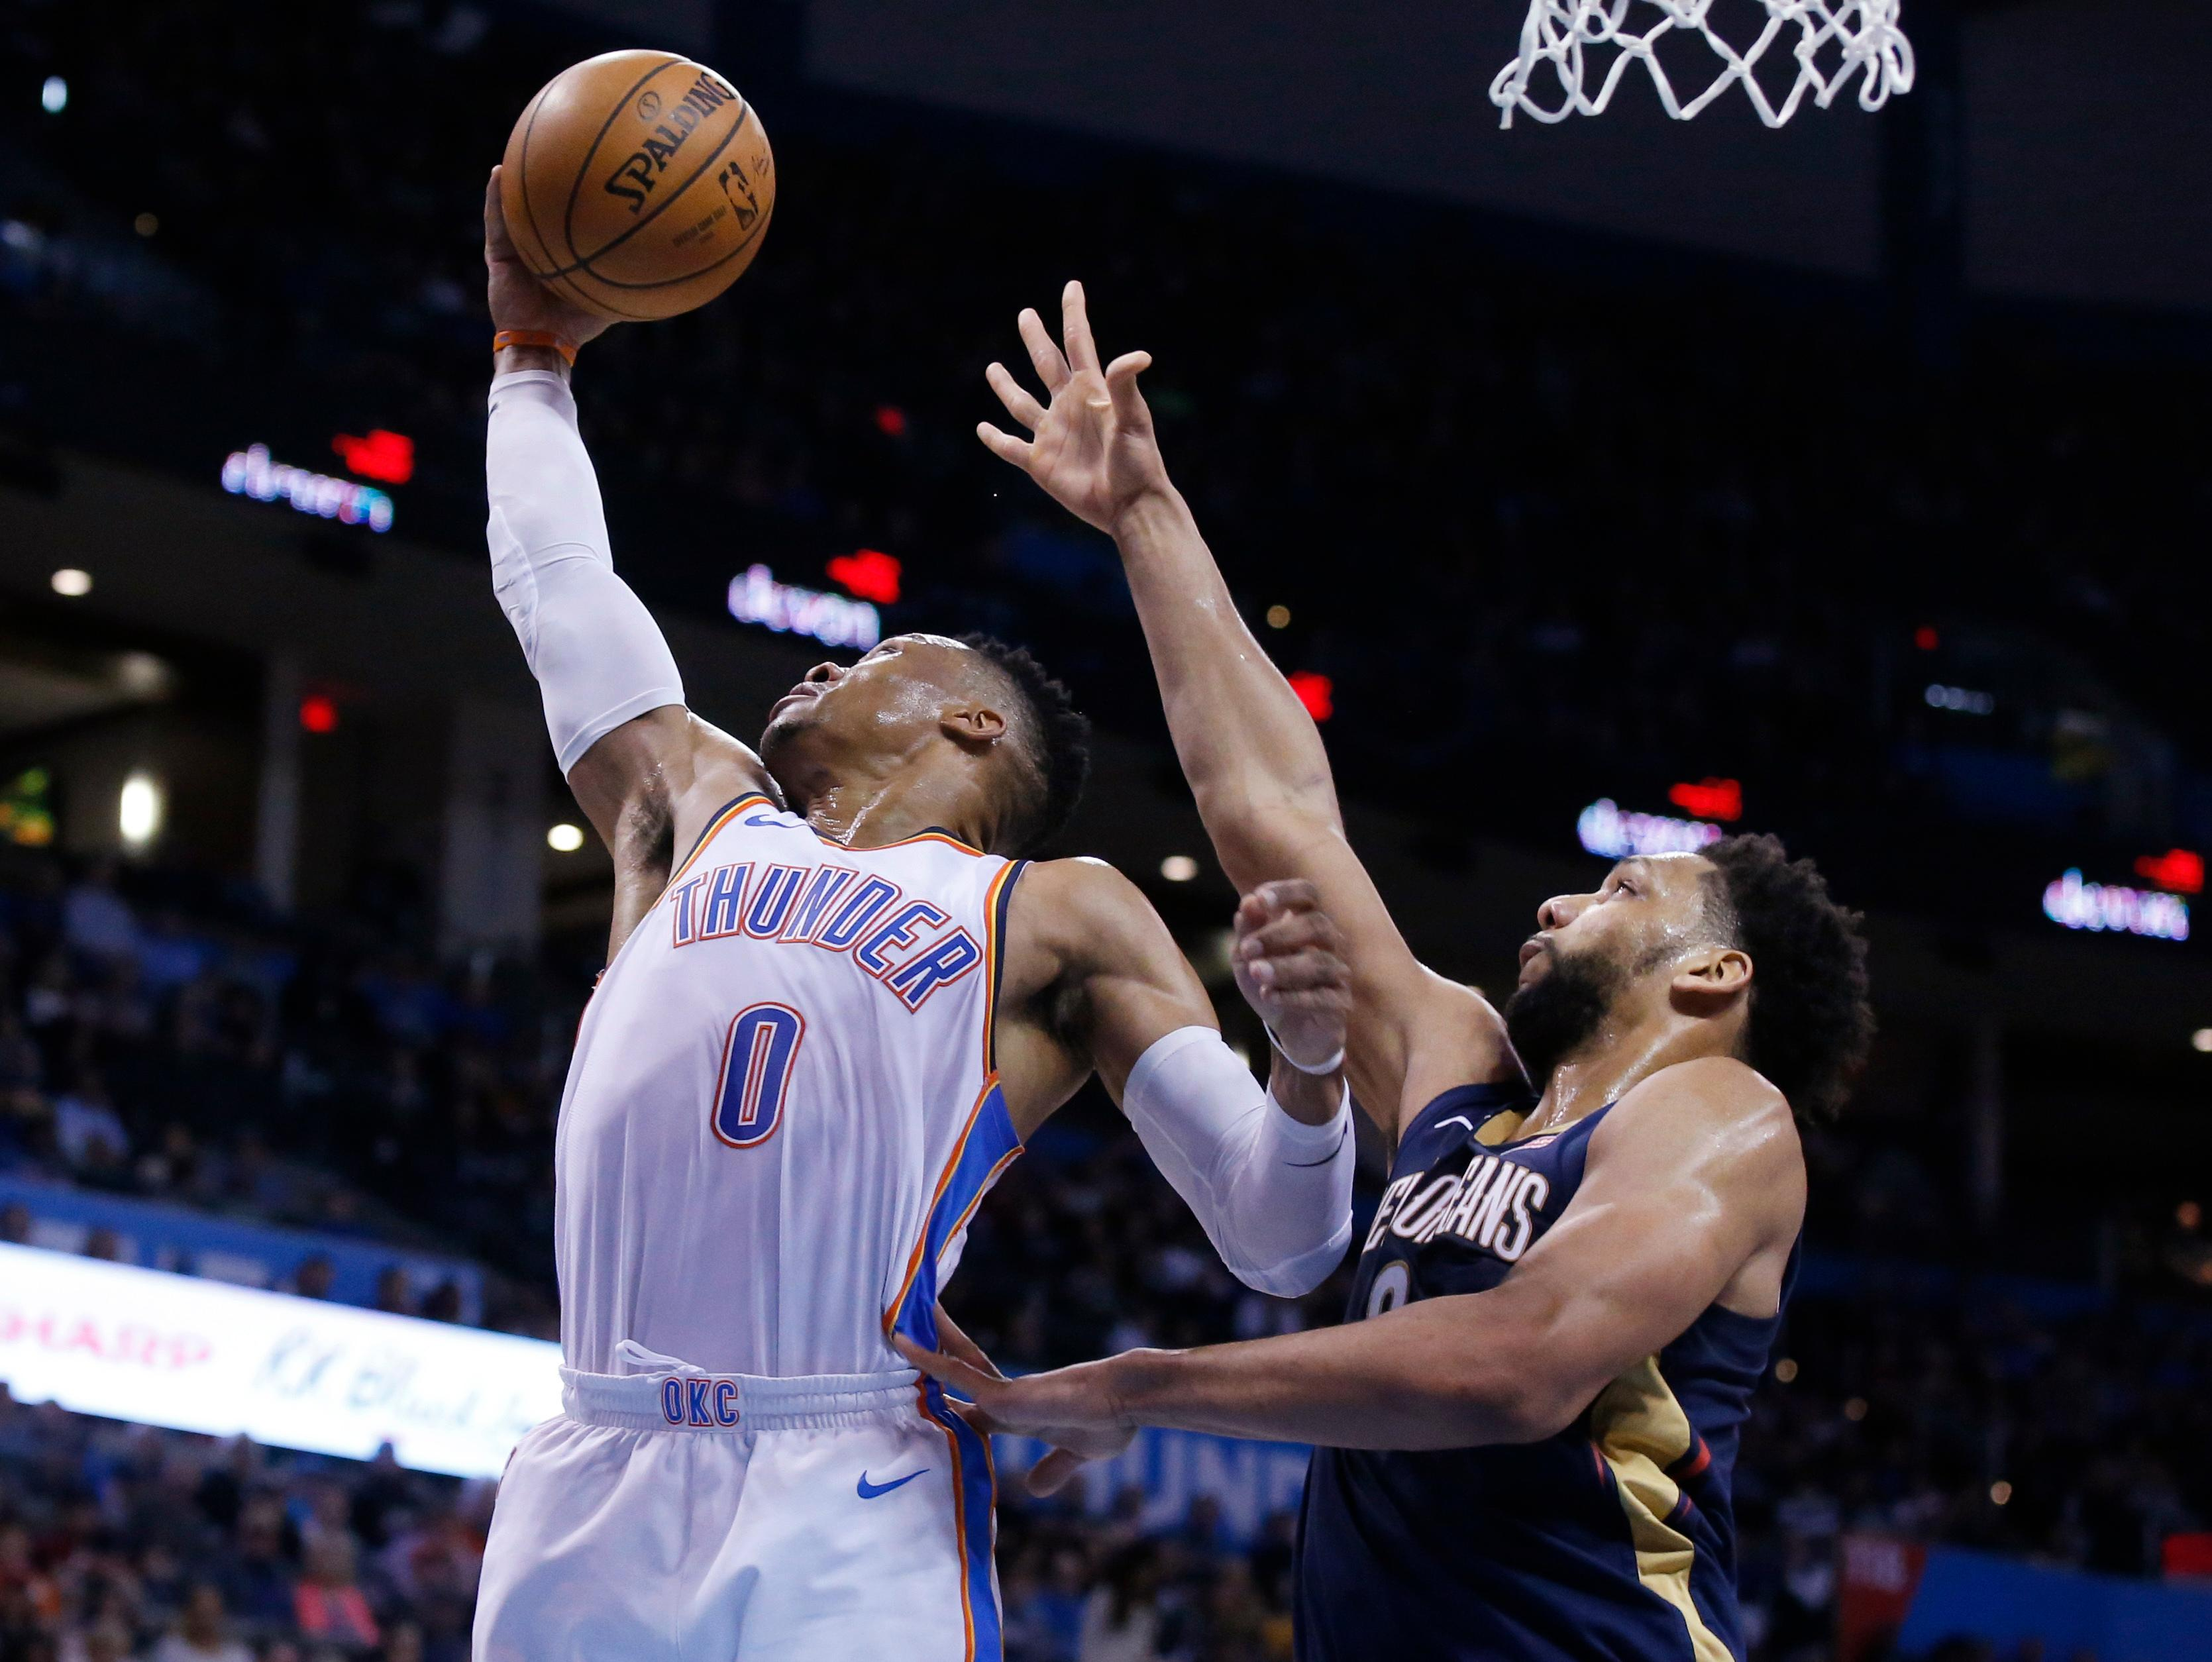 Oklahoma City Thunder guard Russell Westbrook (0) grabs a rebound in front of New Orleans Pelicans center Jahlil Okafor, right, during the first half of an NBA basketball game in Oklahoma City, Thursday, Jan. 24, 2019. (AP Photo/Sue Ogrocki)